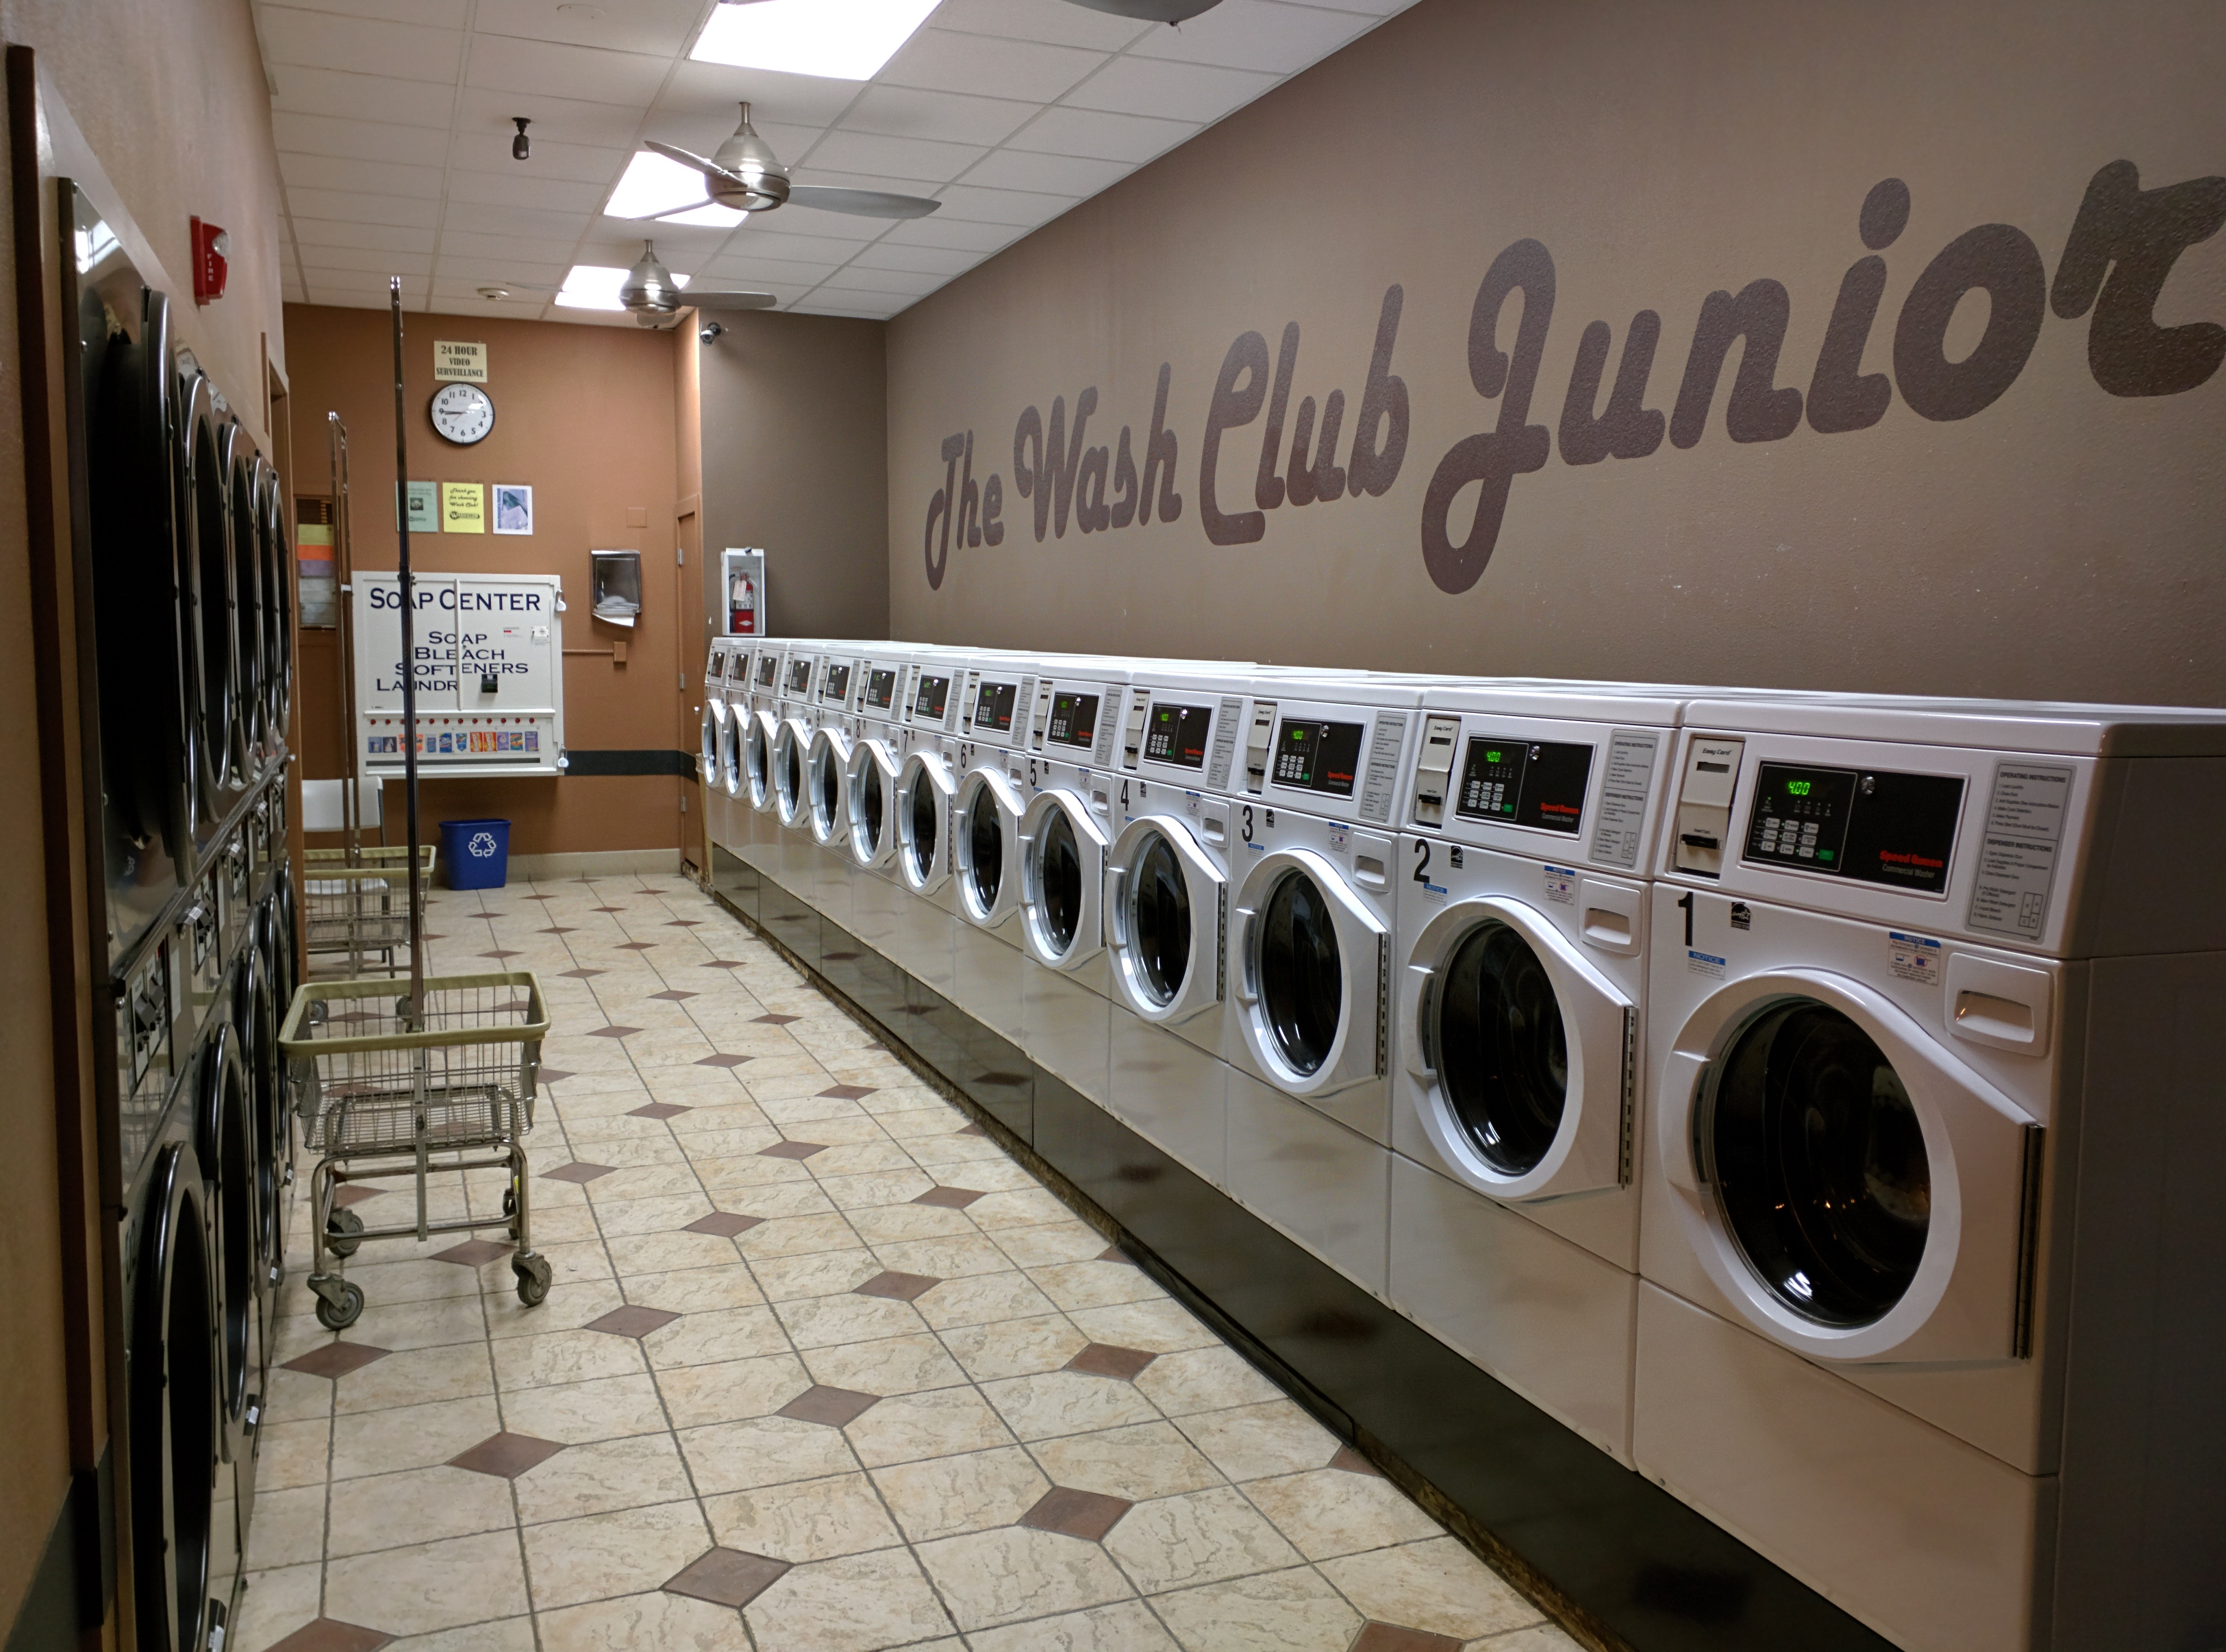 The wash club san franciscos best laundromat dry cleaner our jr section opens at 6 am and closes at 11 pm for your late solutioingenieria Images